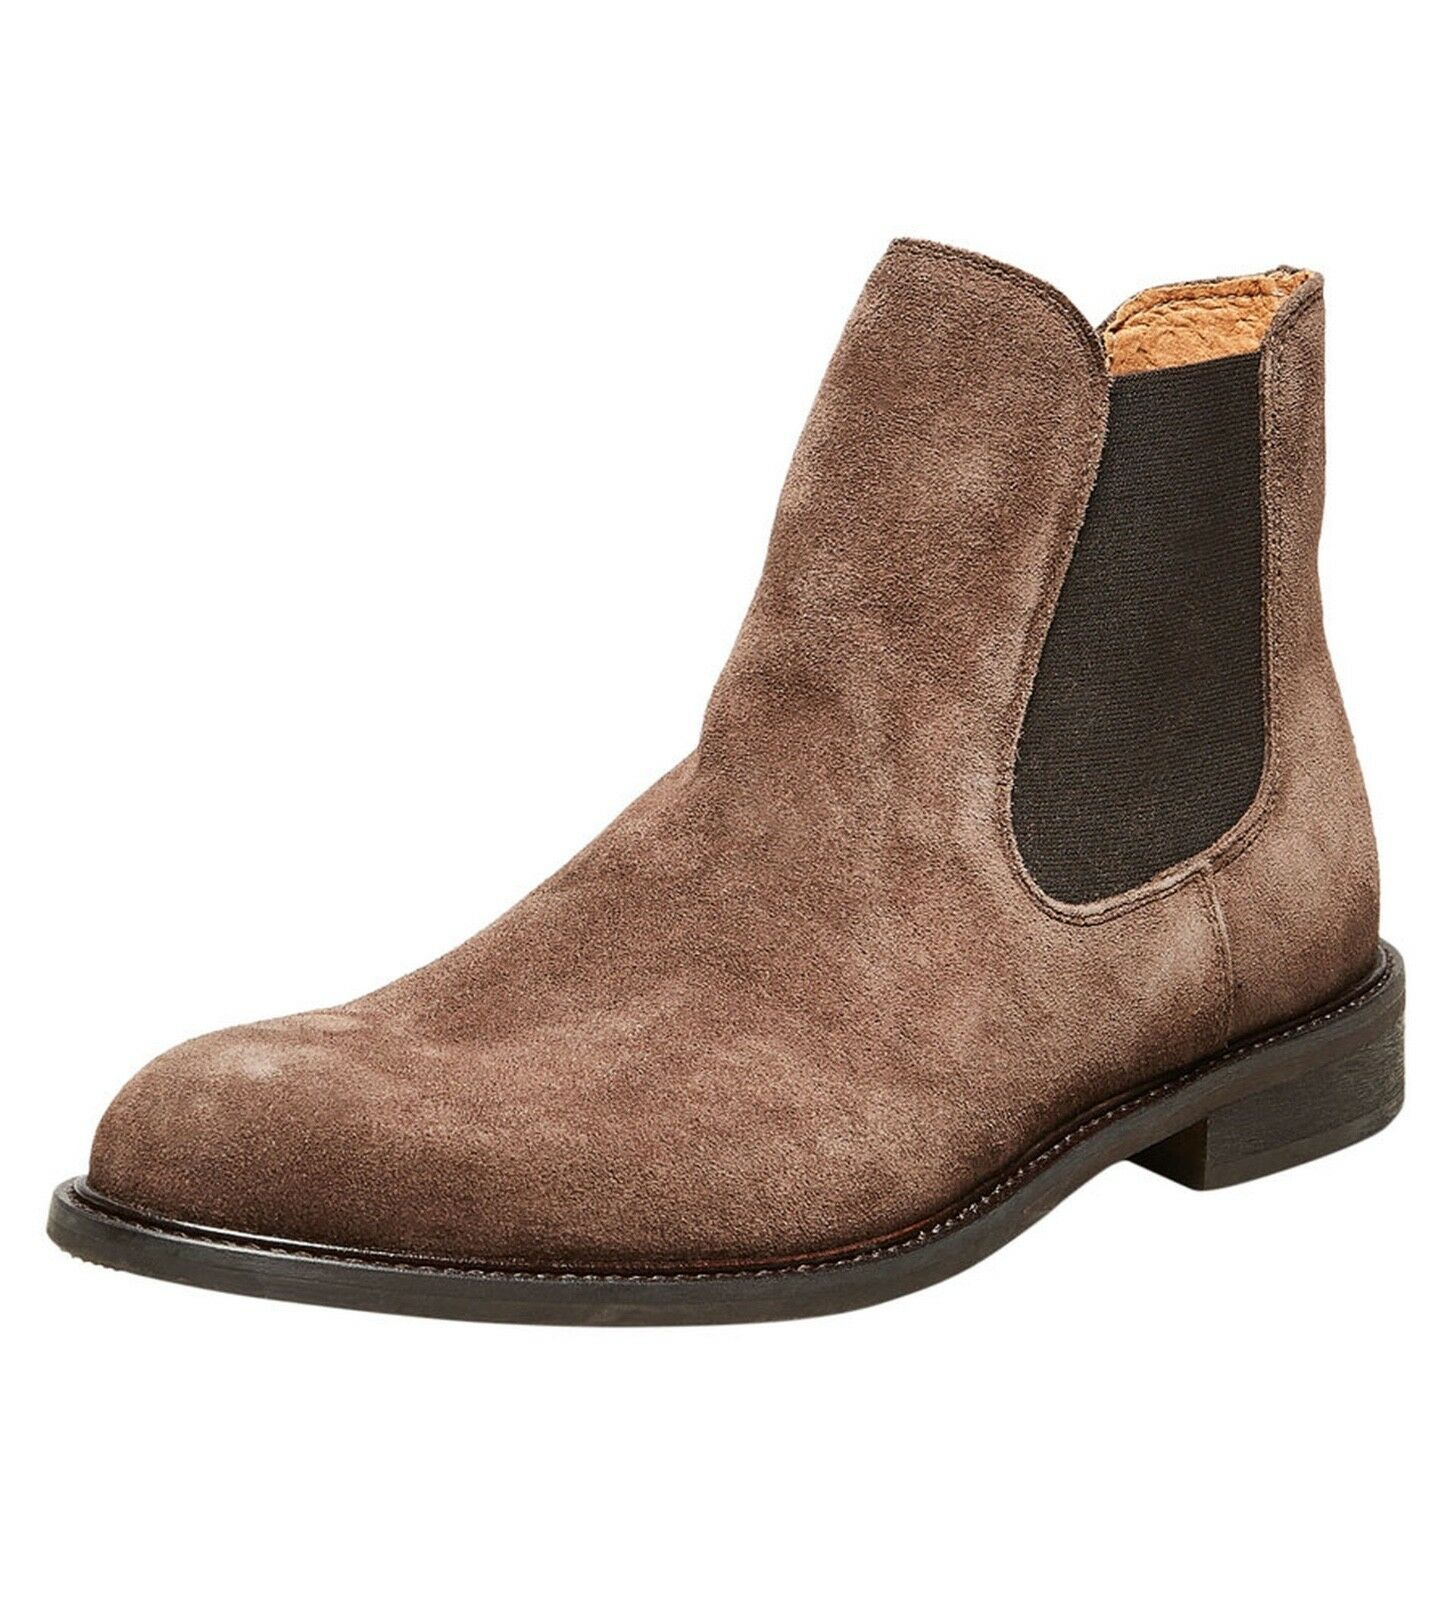 Selected Homme Chelsea Boots High shoes Cocoa Brown Suede Leather Smart Boot